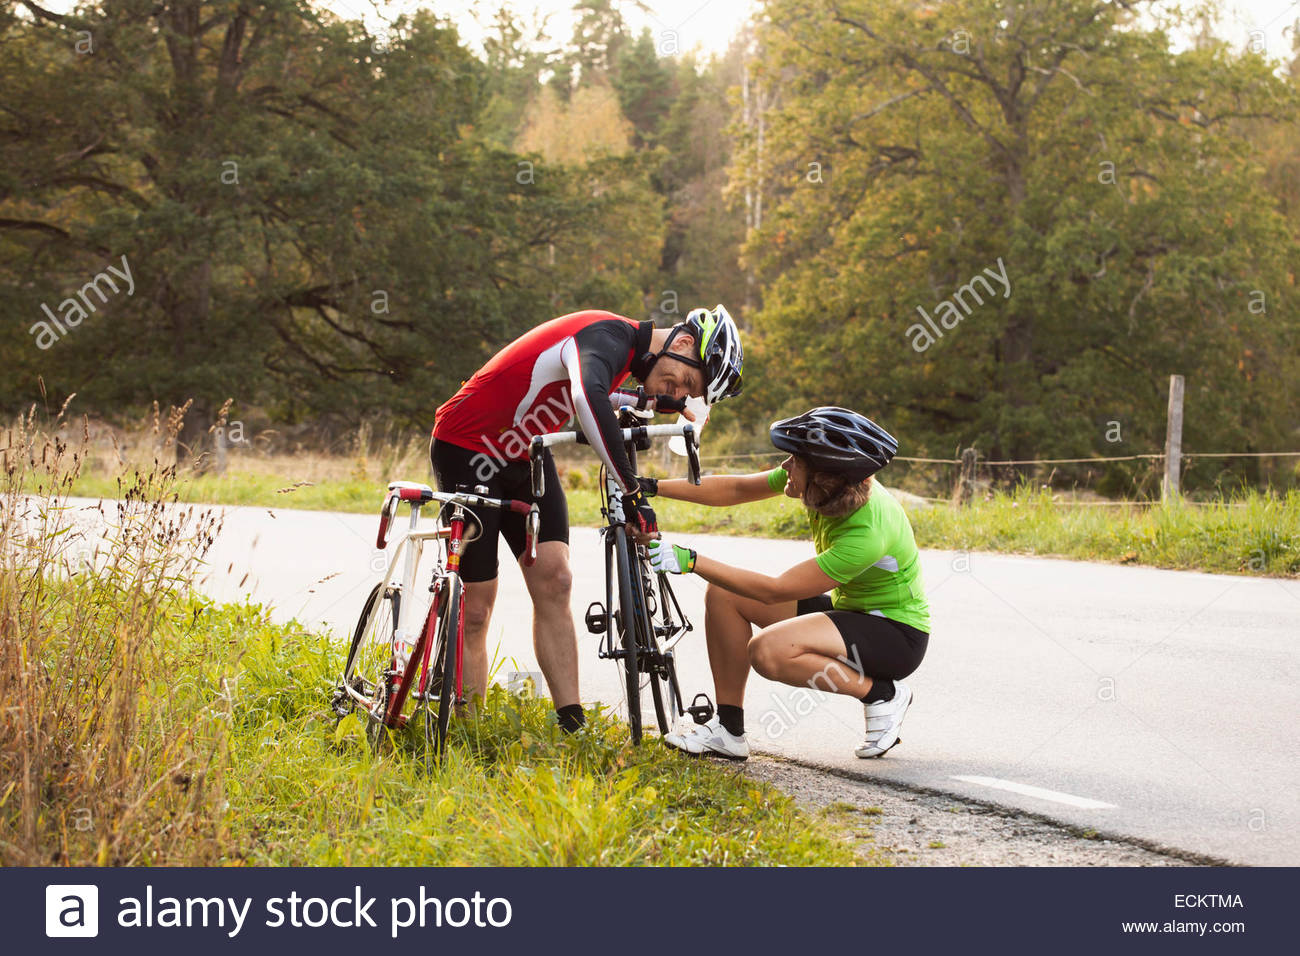 Cycling couple repairing mountain bike on country road - Stock Image